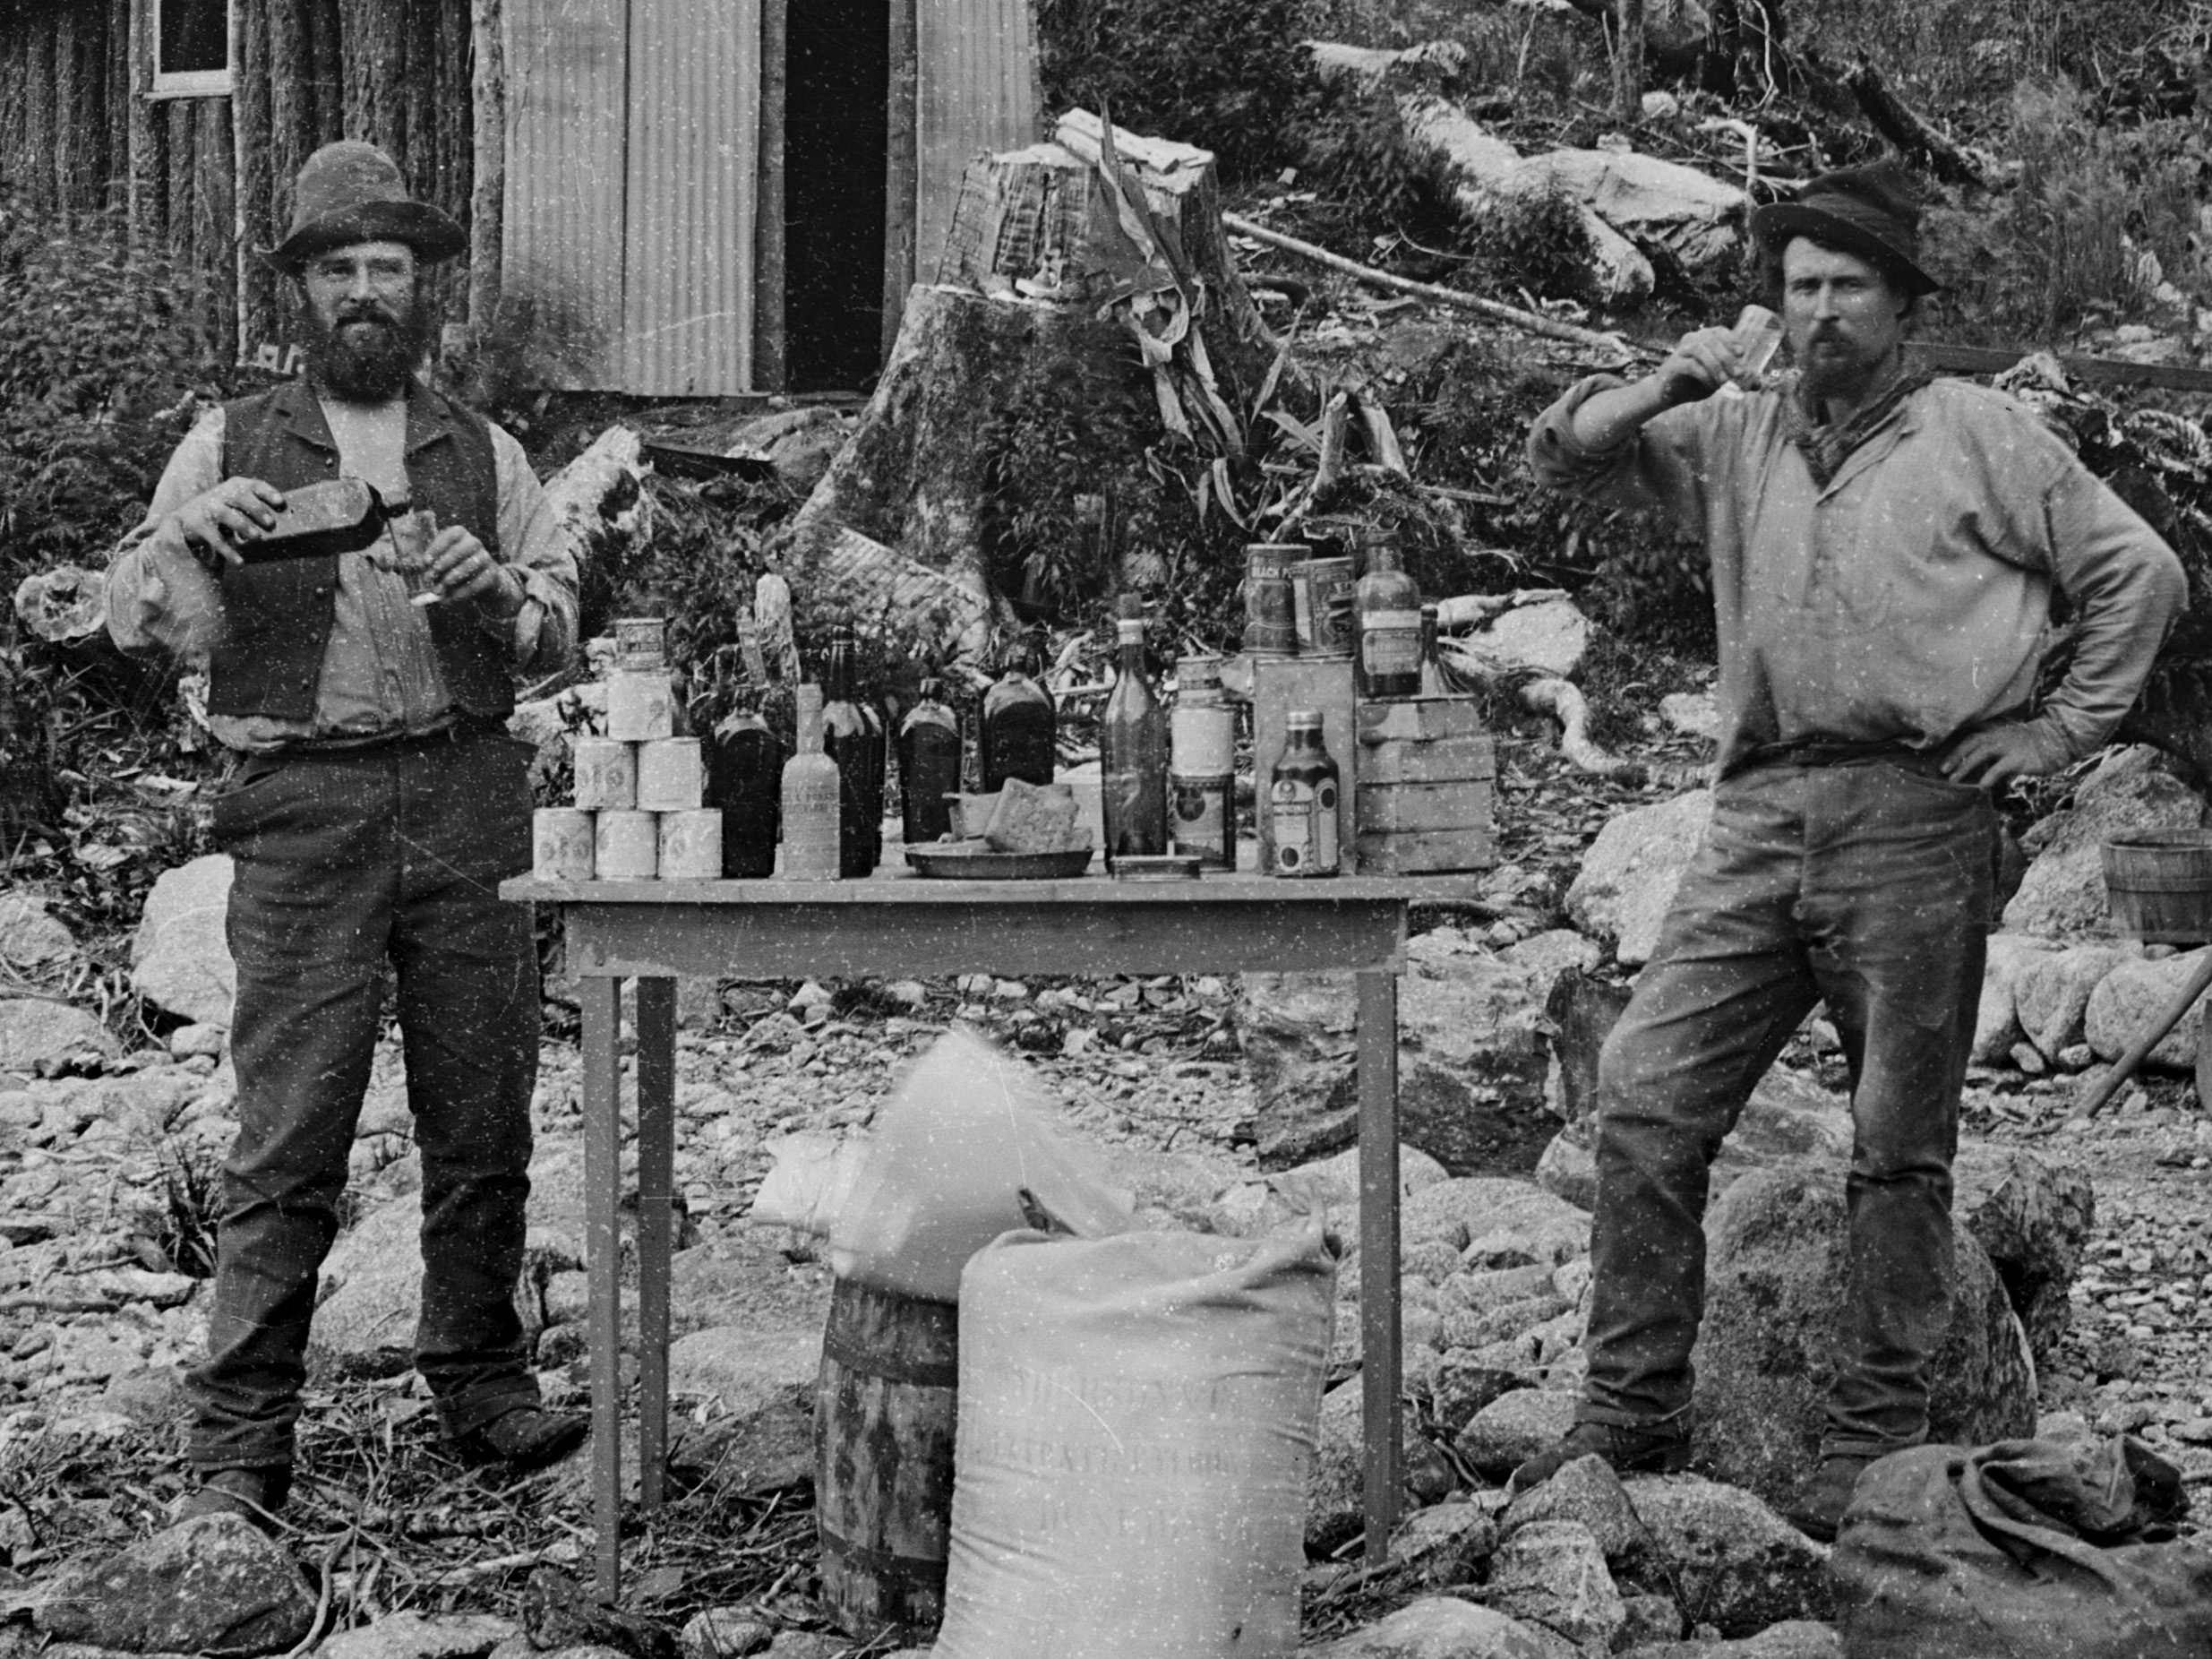 Black and white photo of two men at a campsite with tin huts and bush in the background. The men have full bottles in their hands and a table of bottles and food between them.